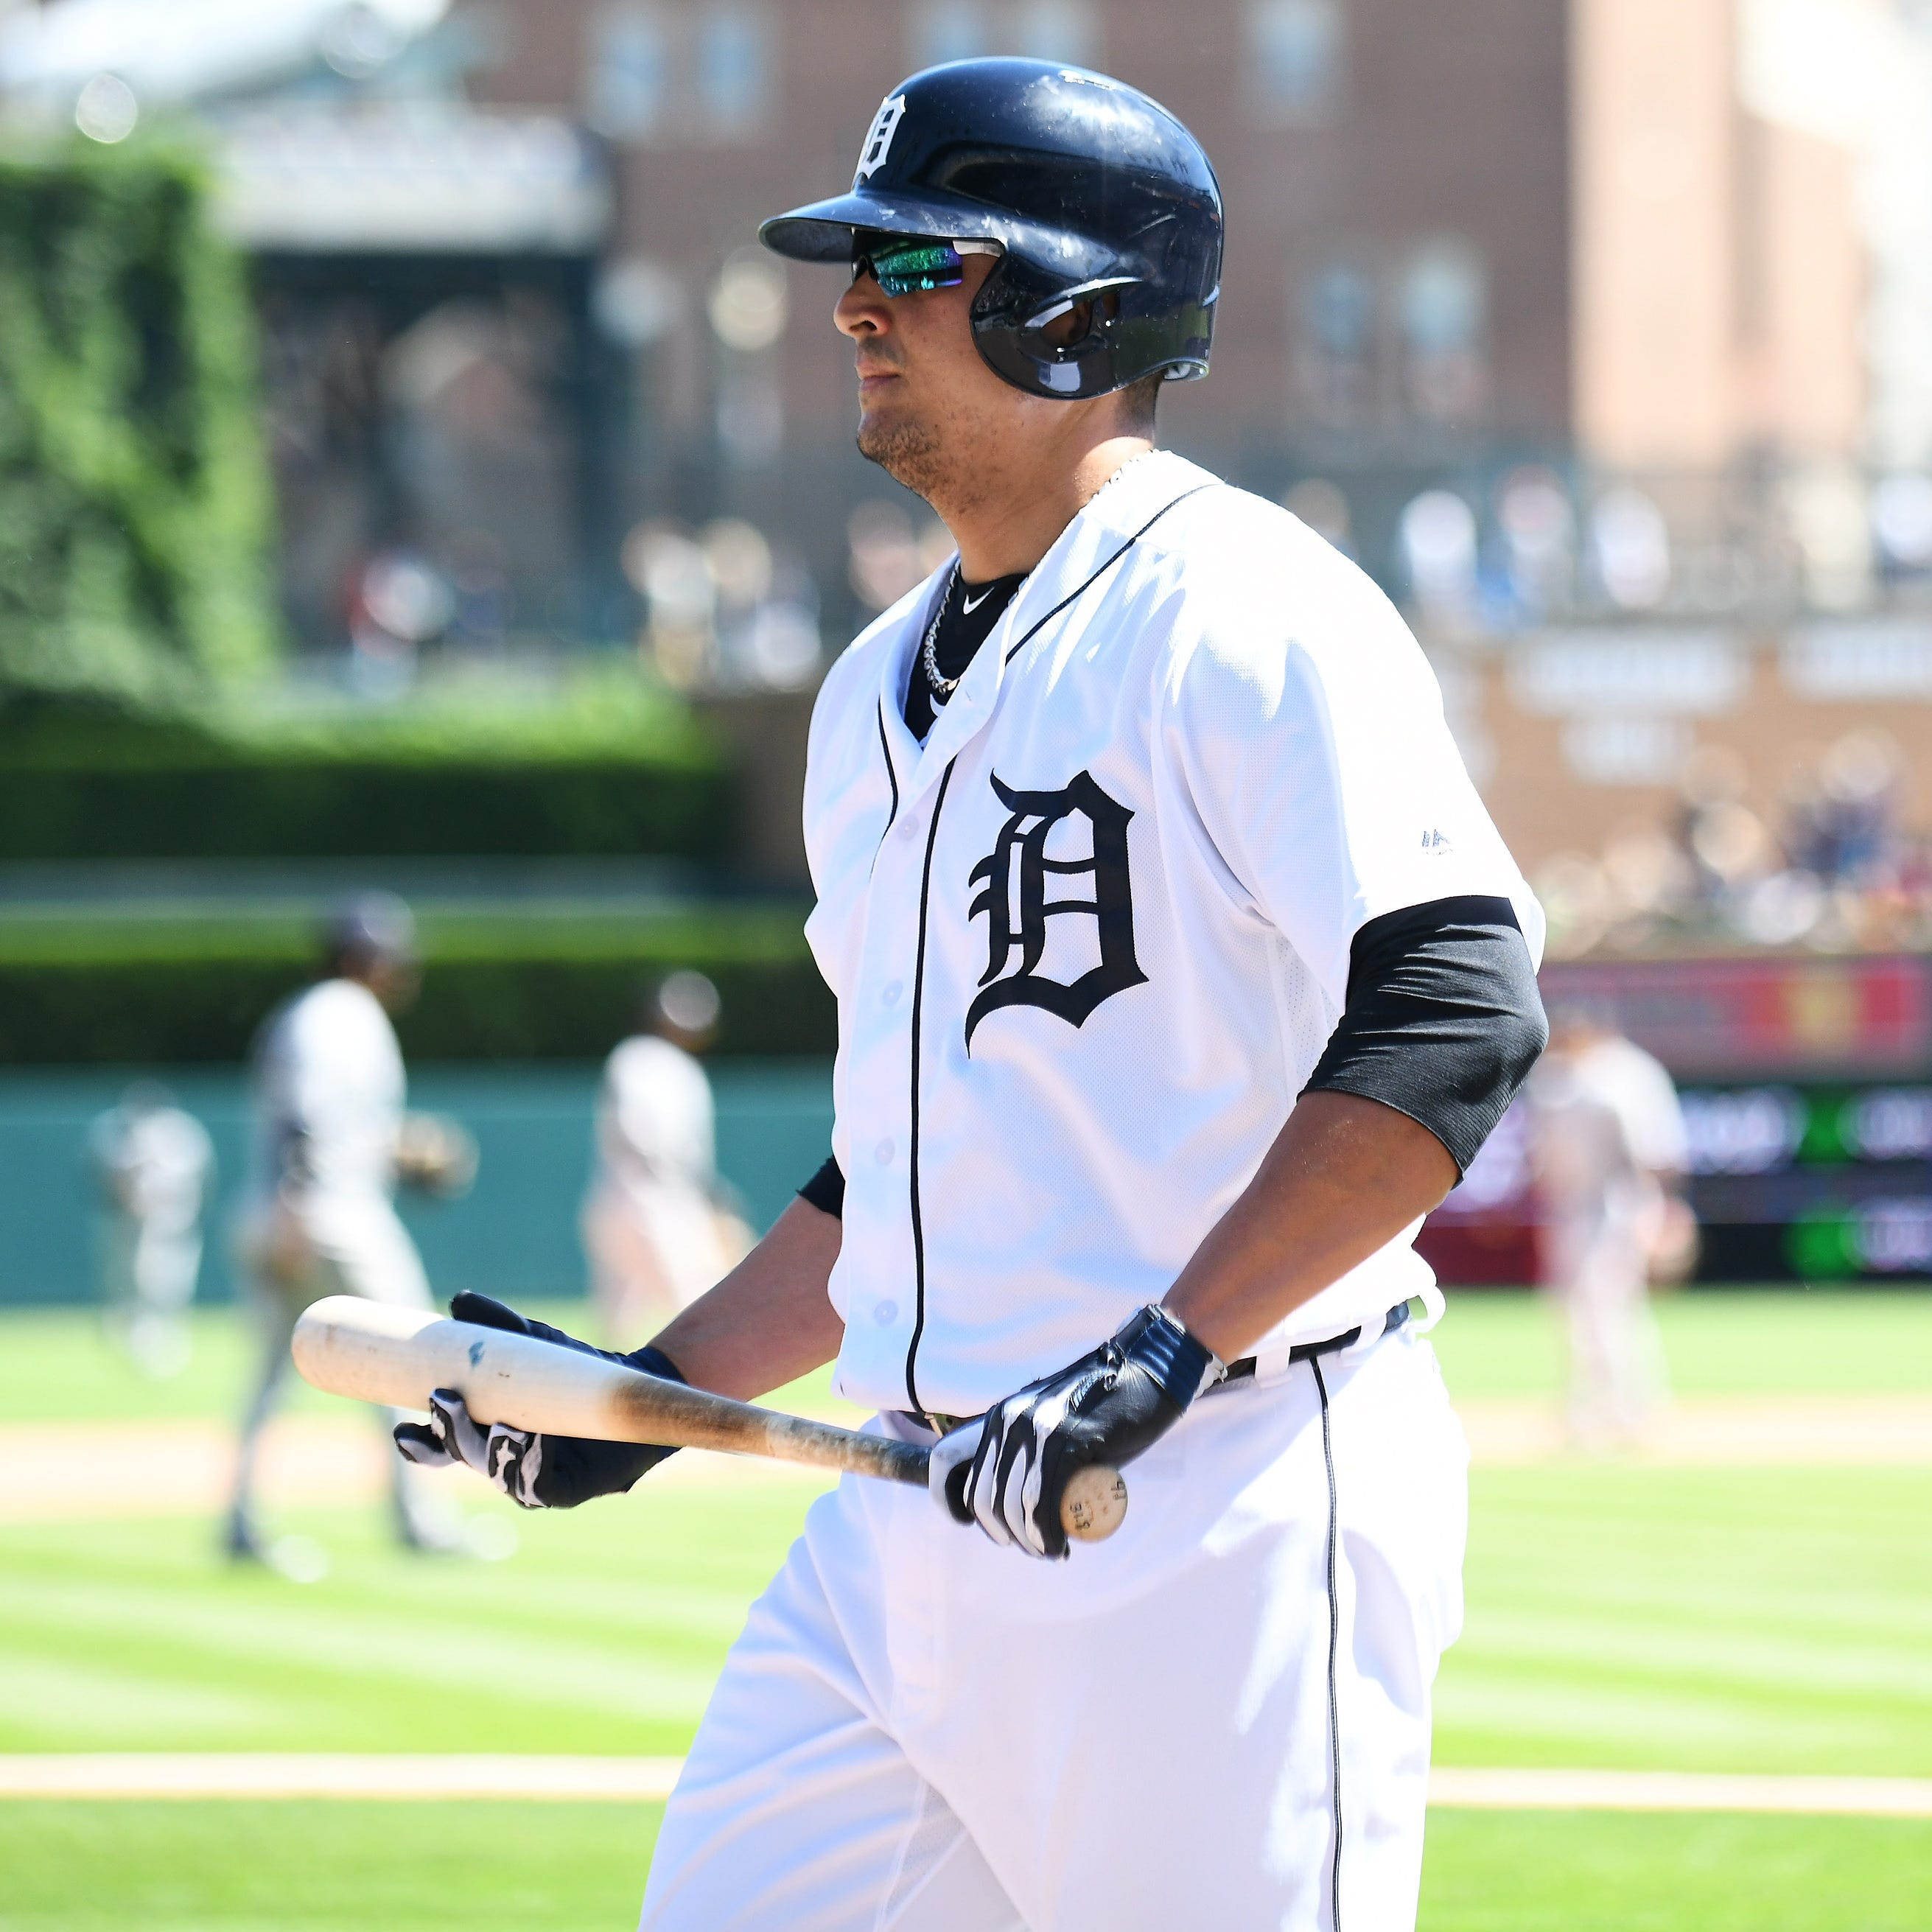 Tigers' Victor Martinez 'pretty sure' retirement is near